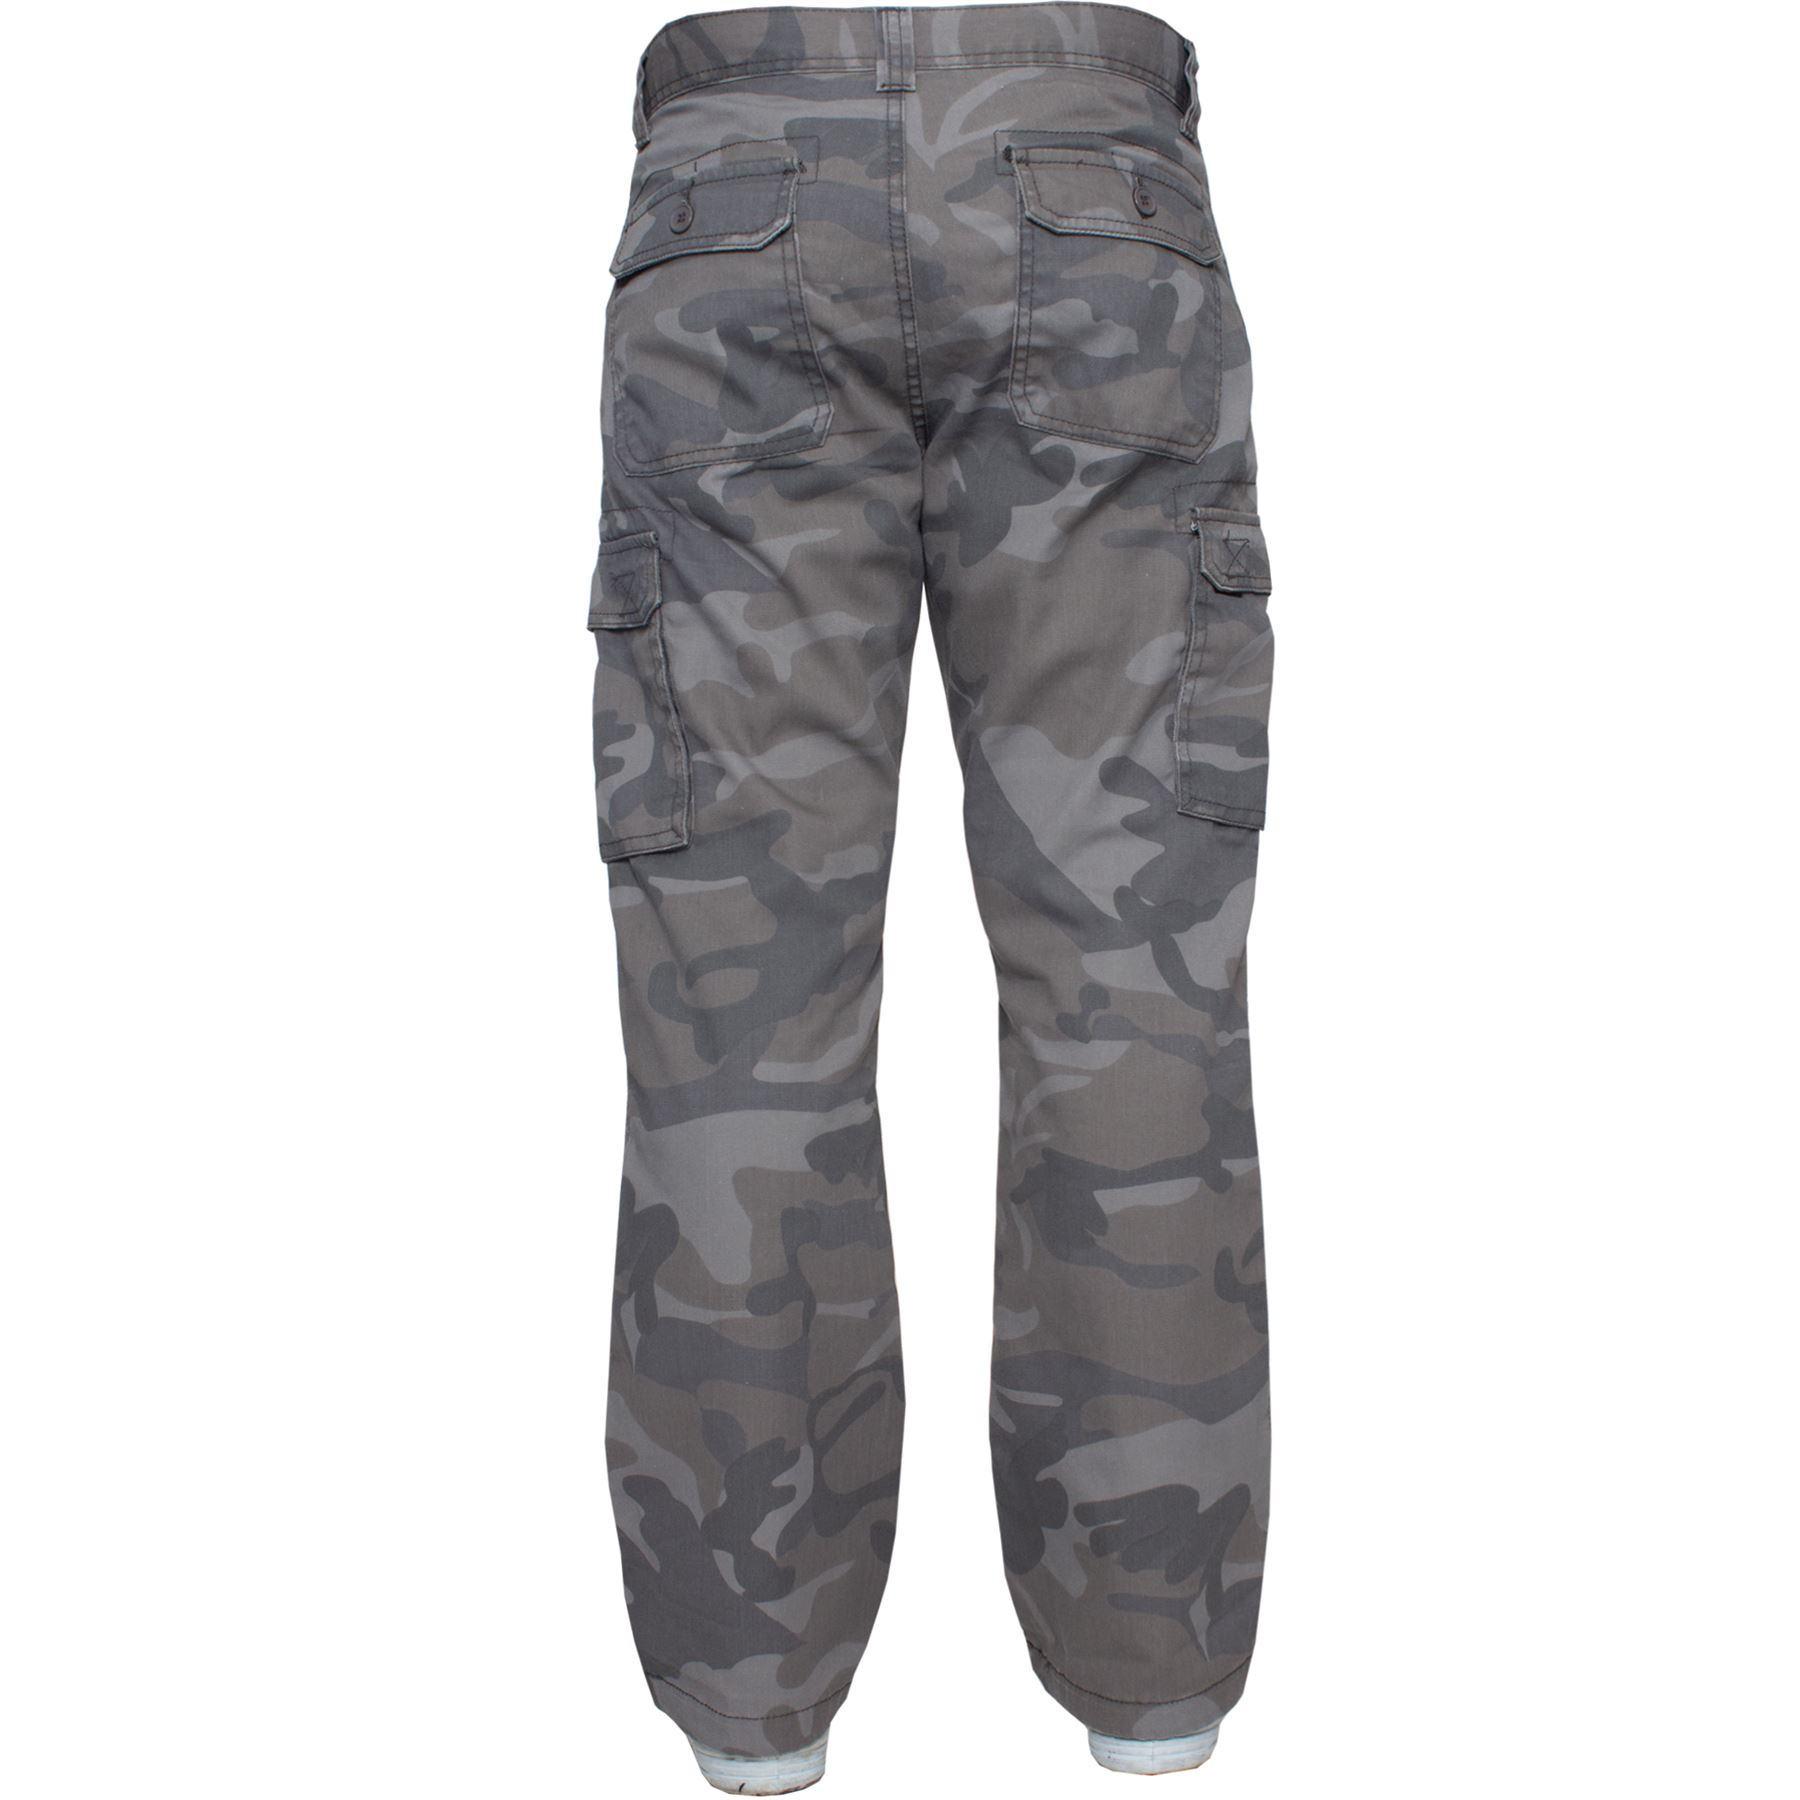 Kruze-Mens-Military-Combat-Trousers-Camouflage-Cargo-Camo-Army-Casual-Work-Pants thumbnail 13